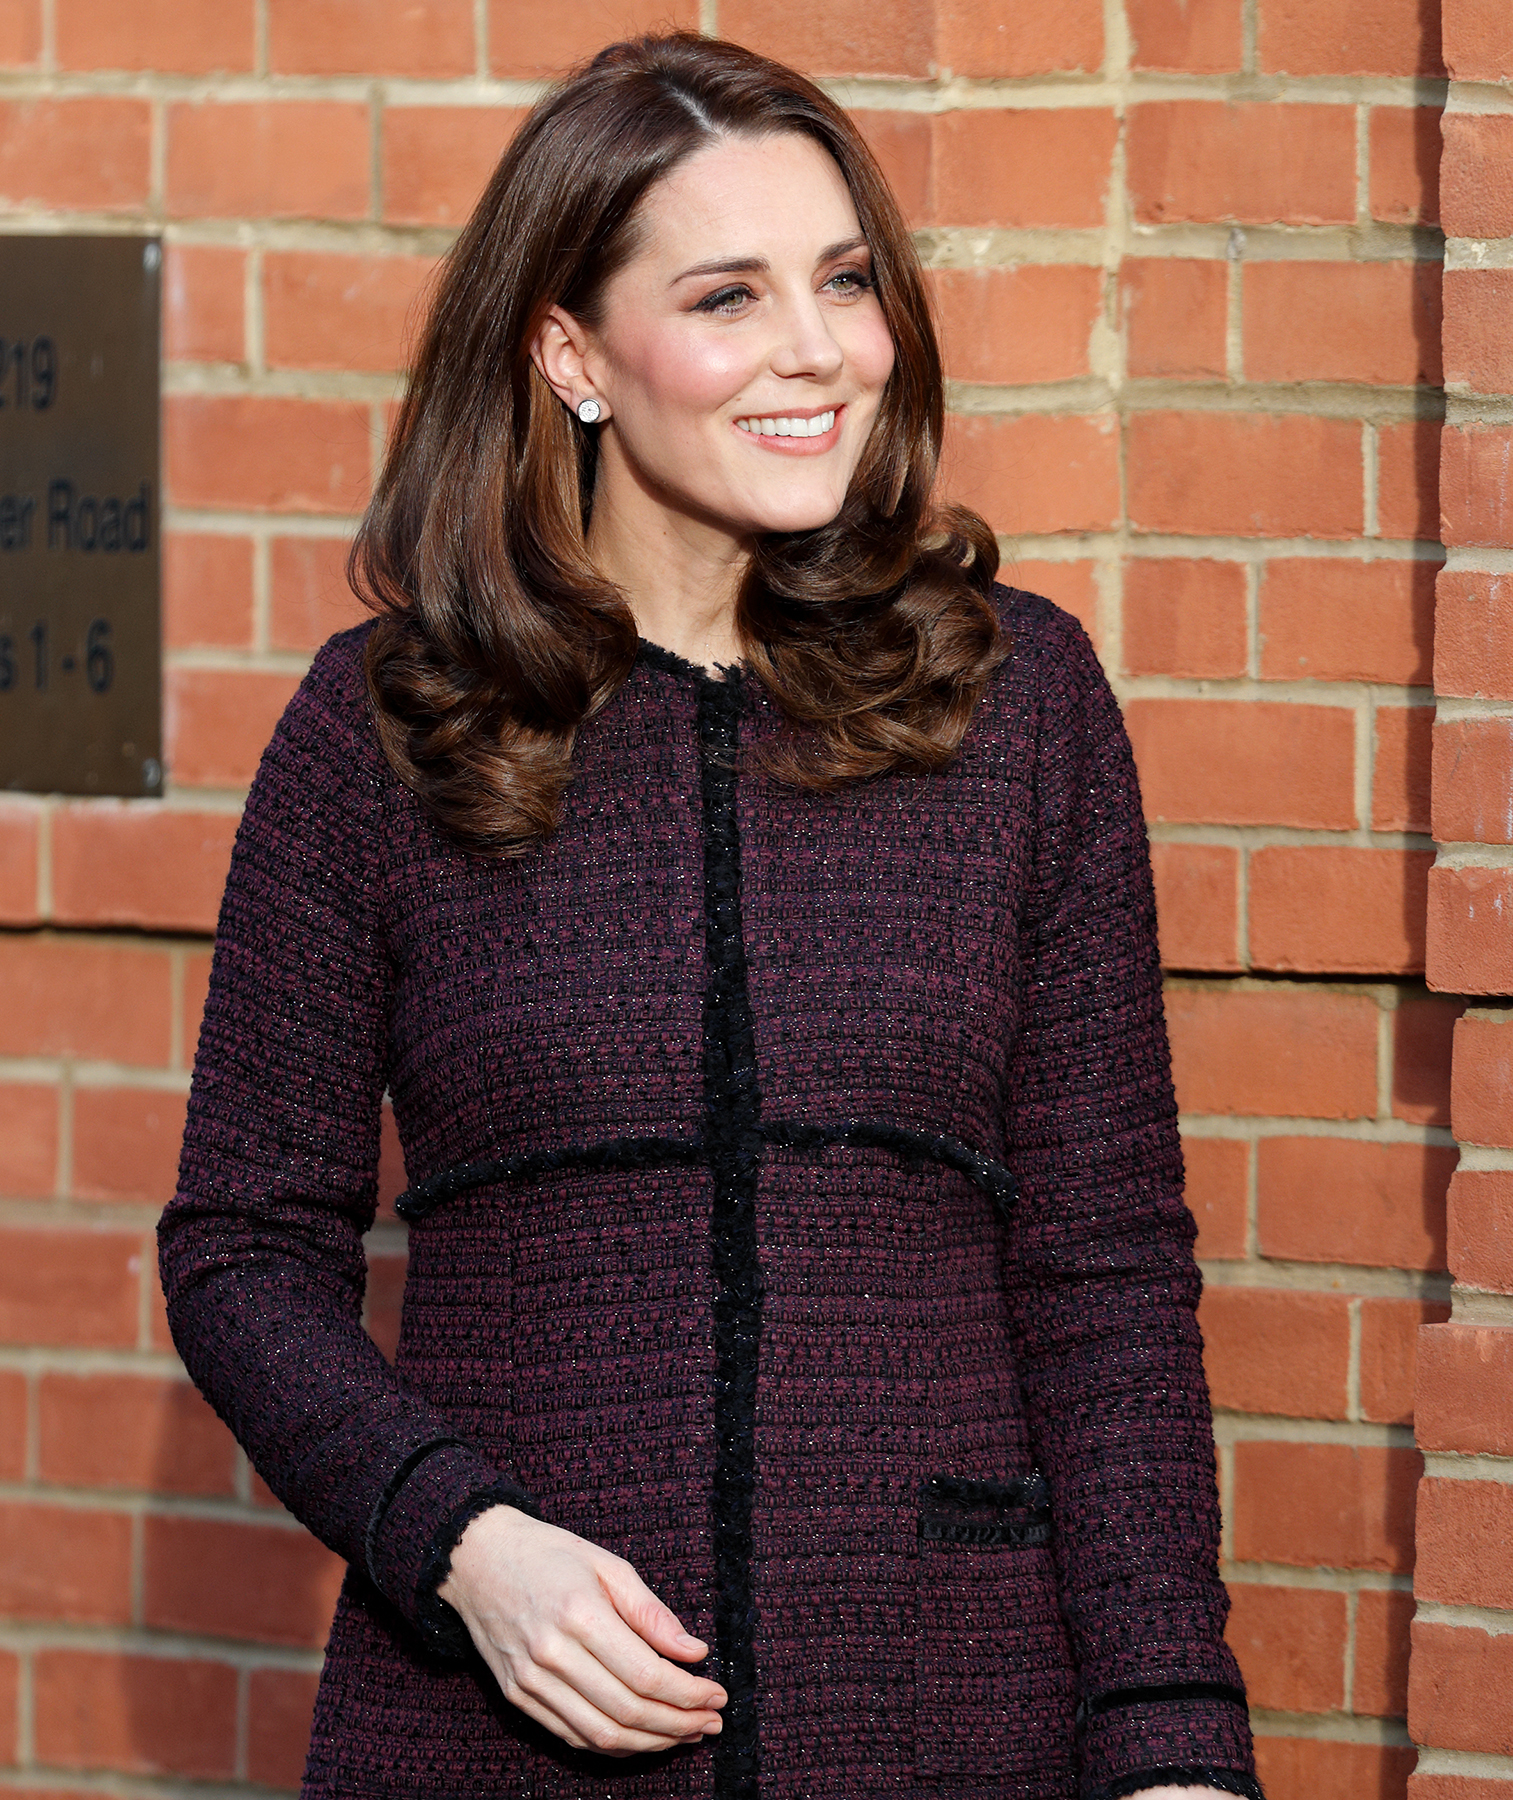 Kate Middleton brick background